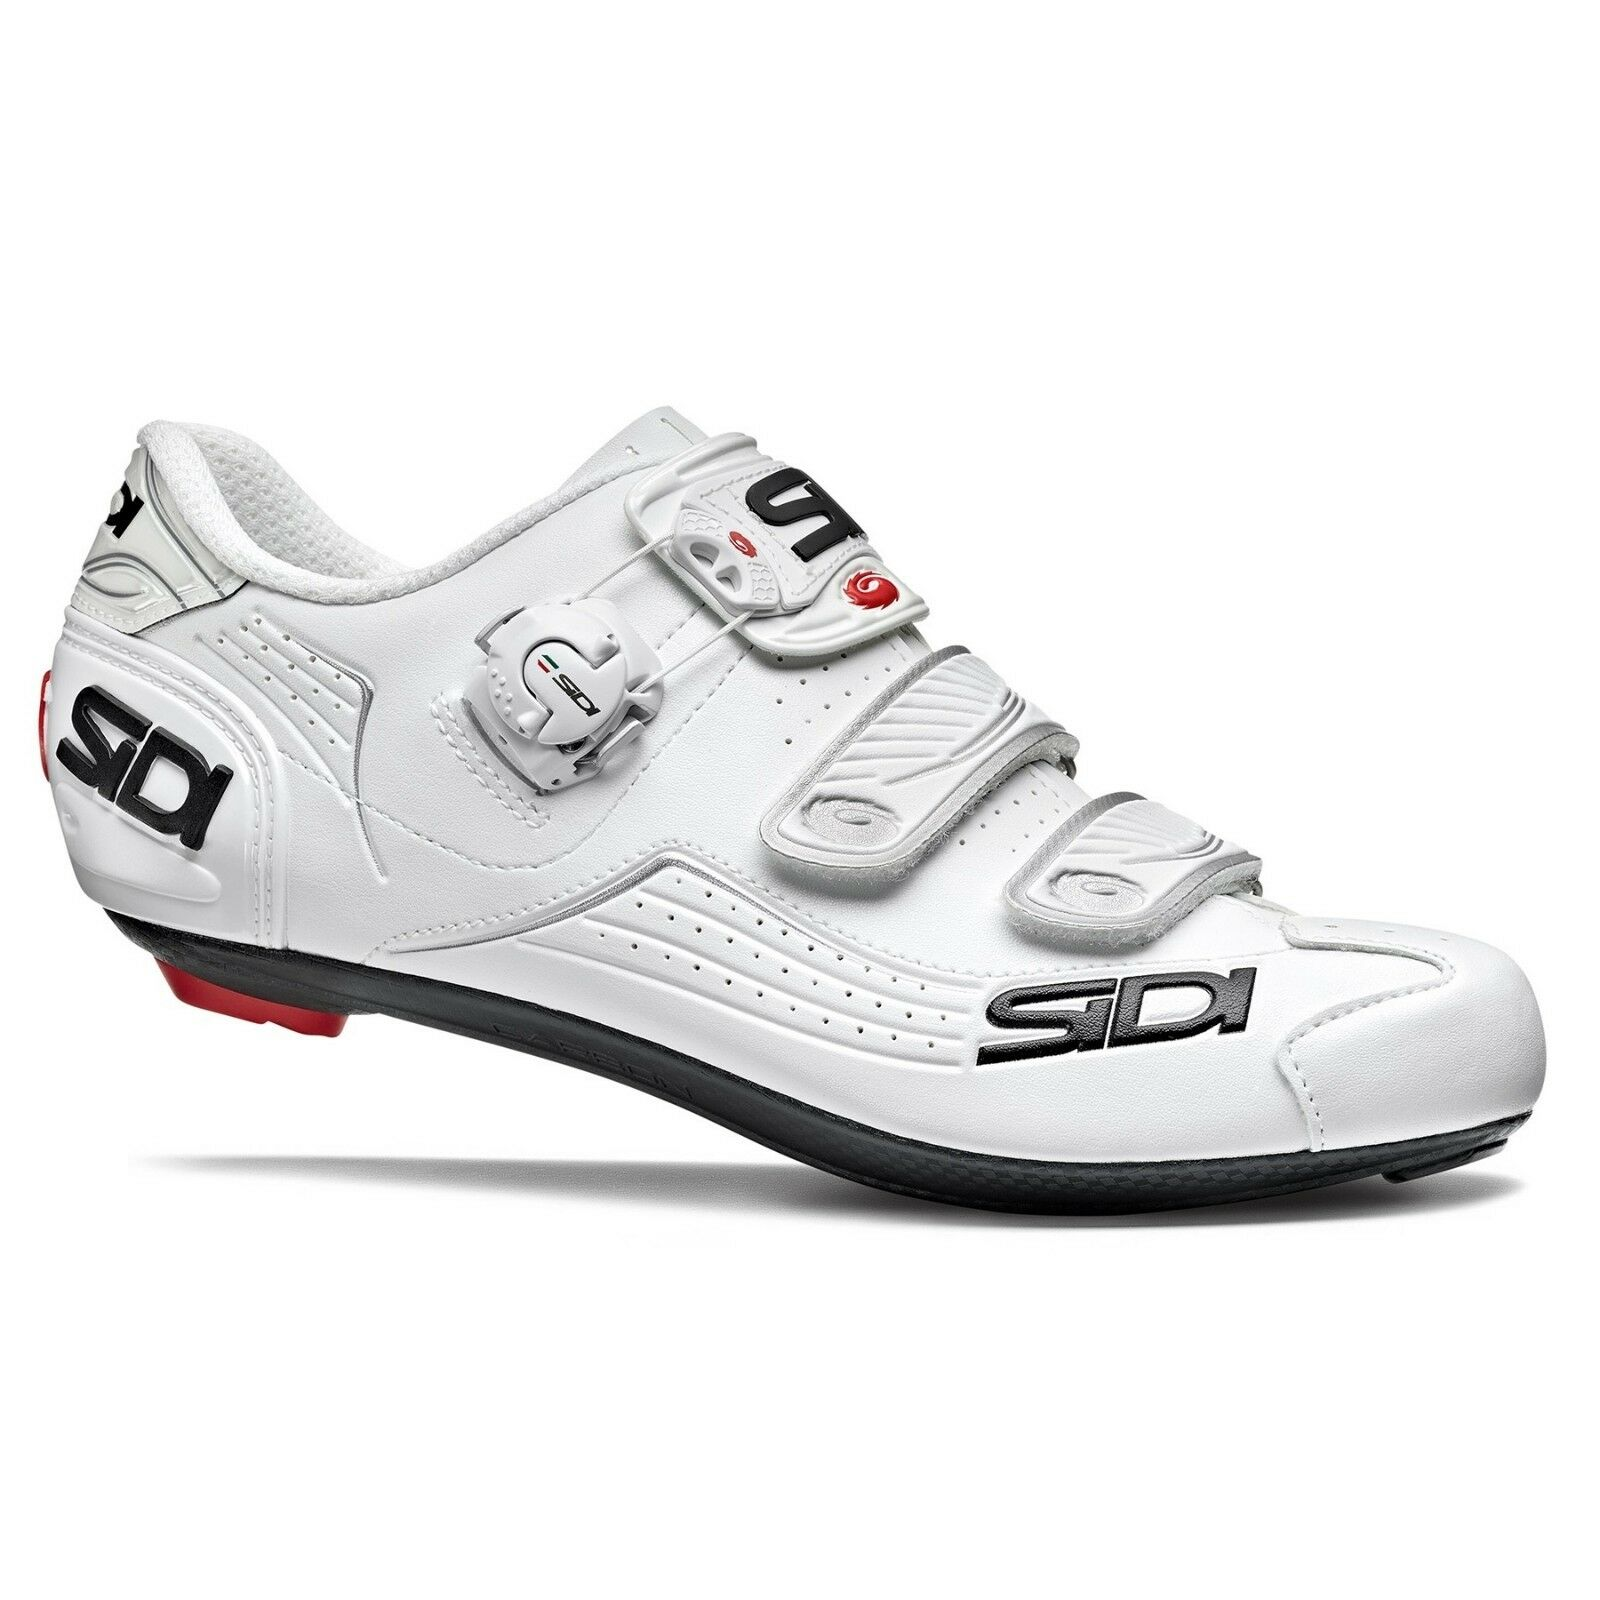 SIDI ALBA Road Cycling shoes Bike Cleat  shoes White White Size   to provide you with a pleasant online shopping